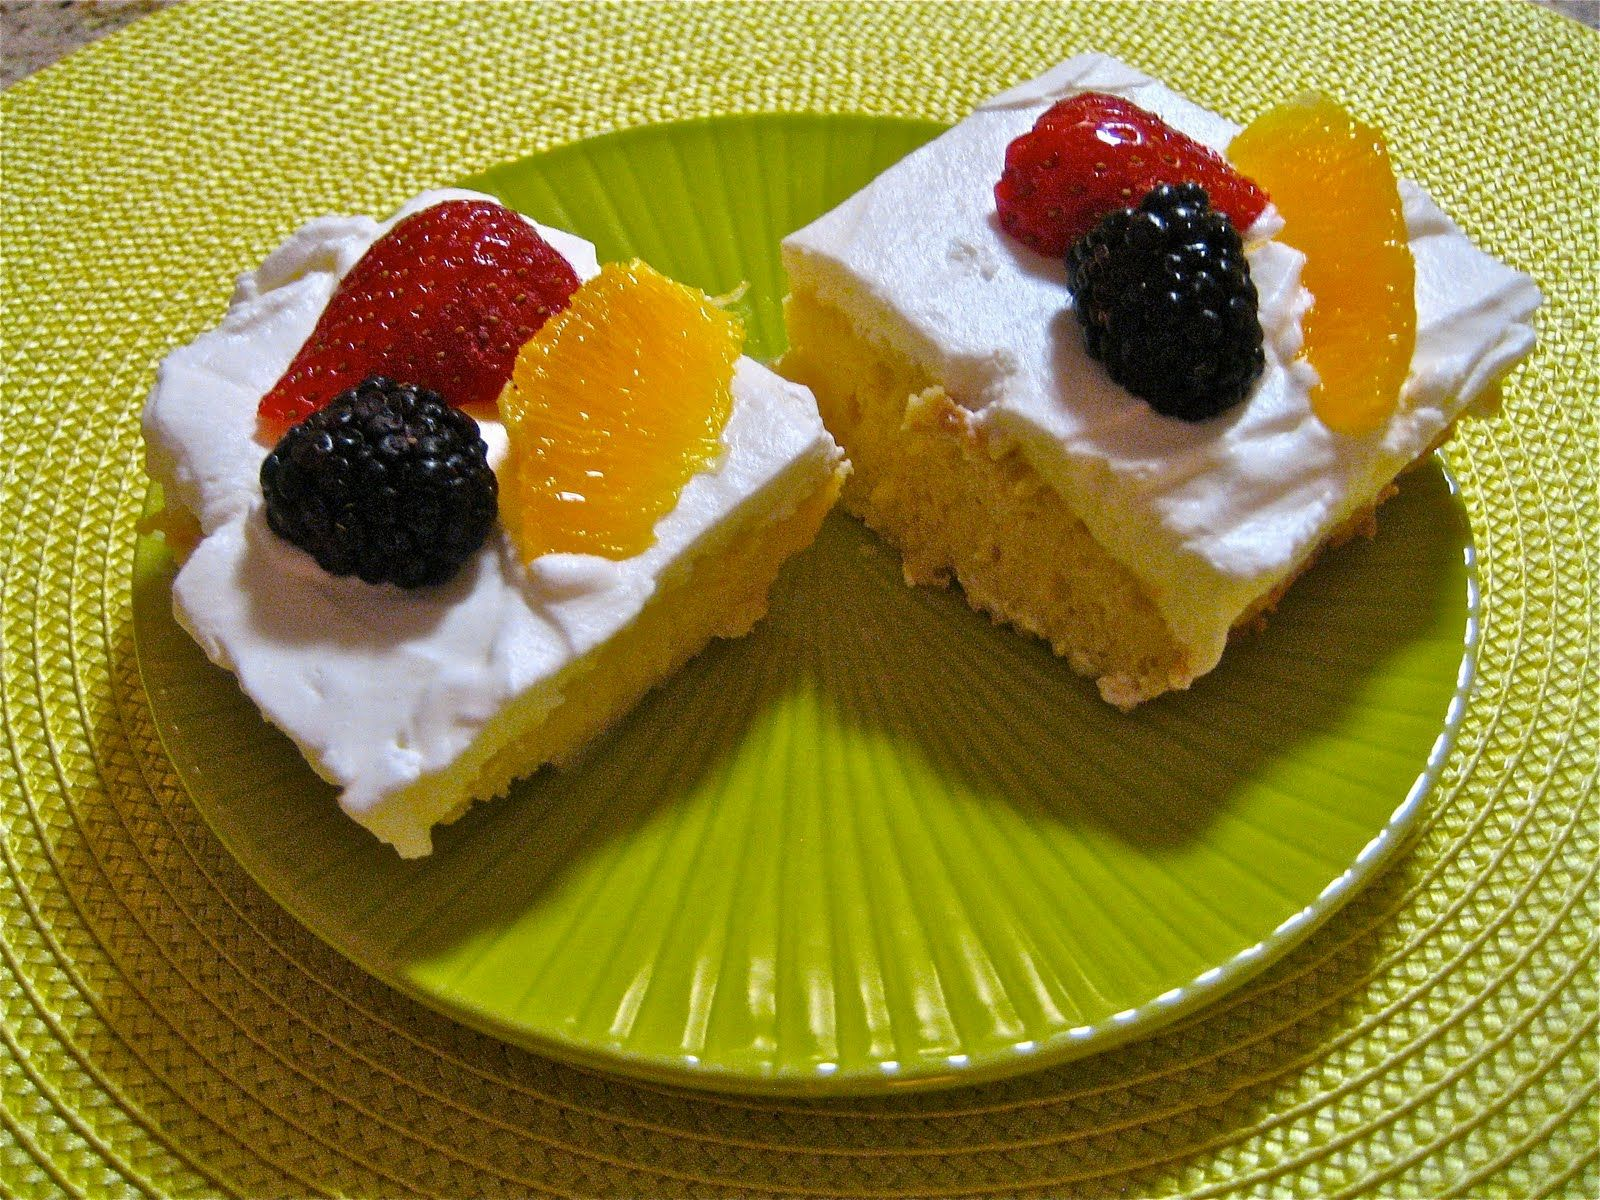 Cake Recipes In Pinterest: The Sweet Spot: Mexican Dessert